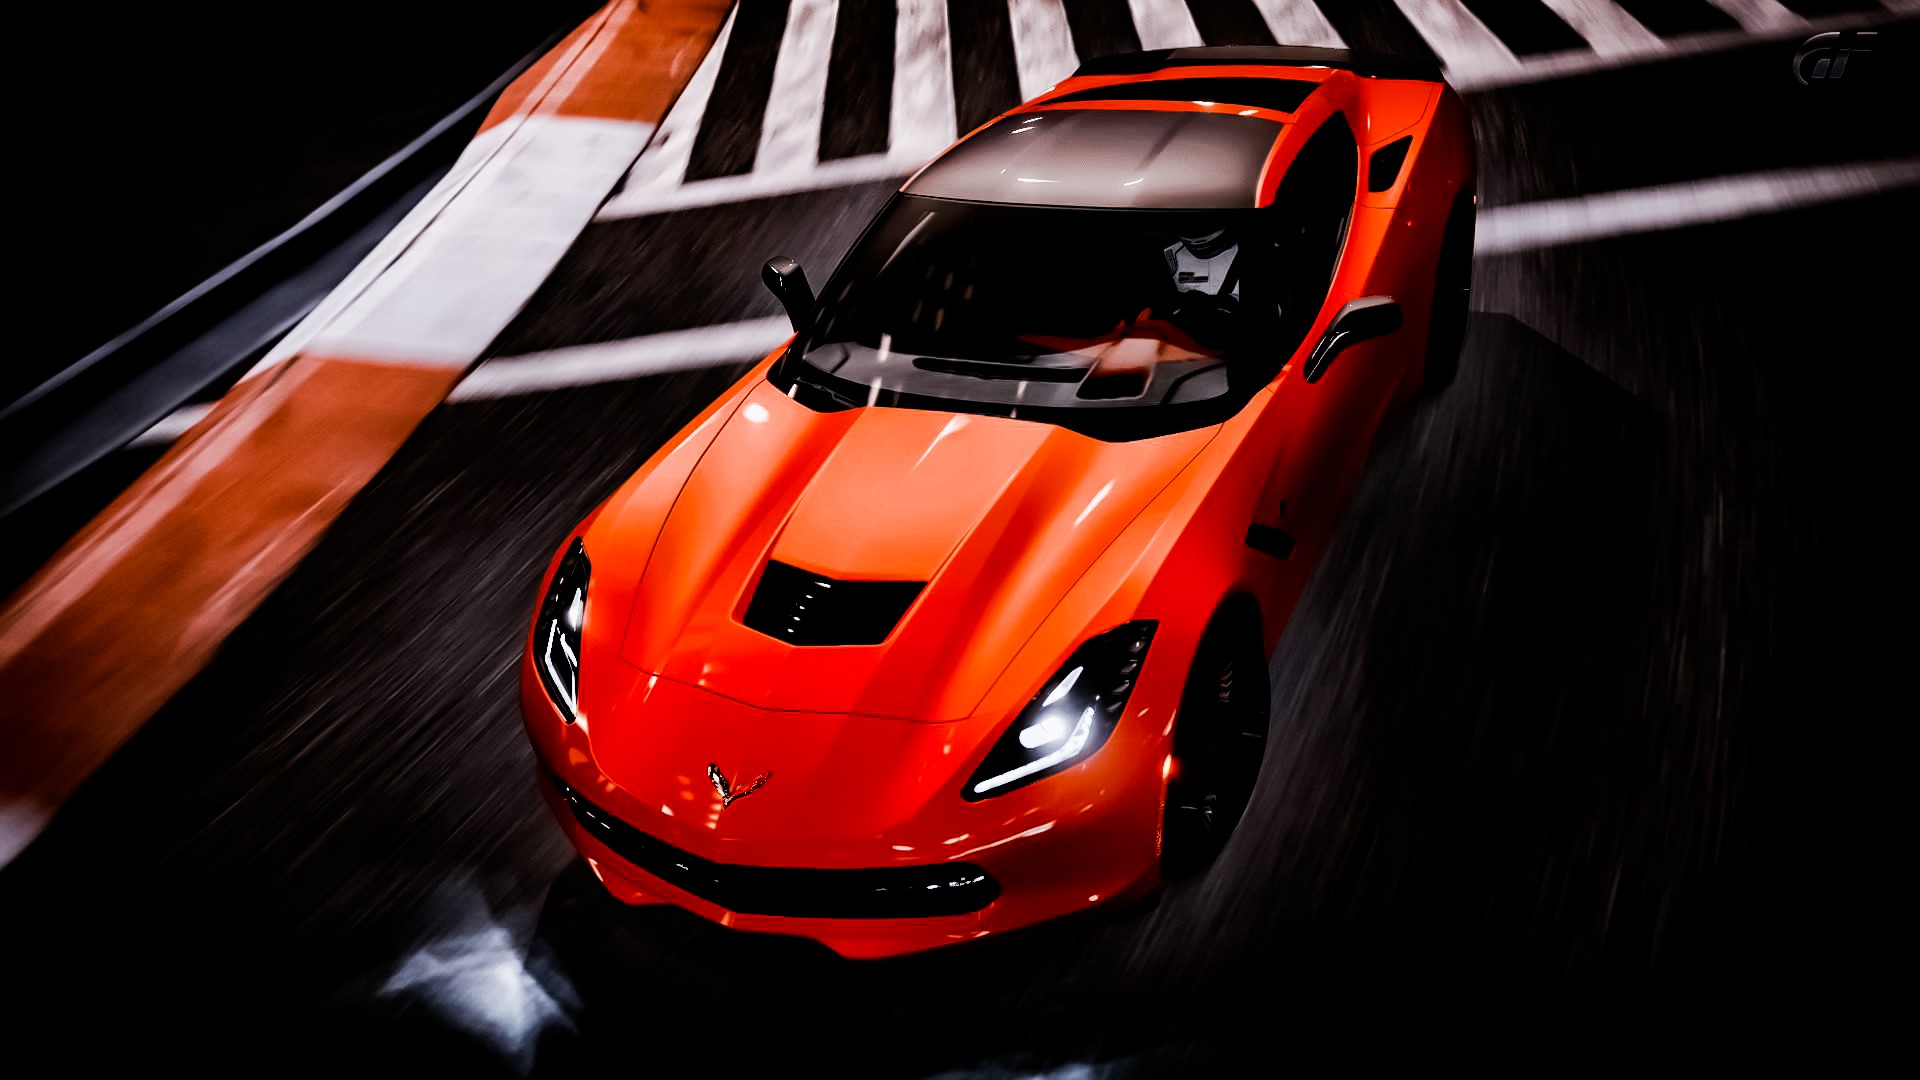 Corvette Stingray Wallpaper 3D